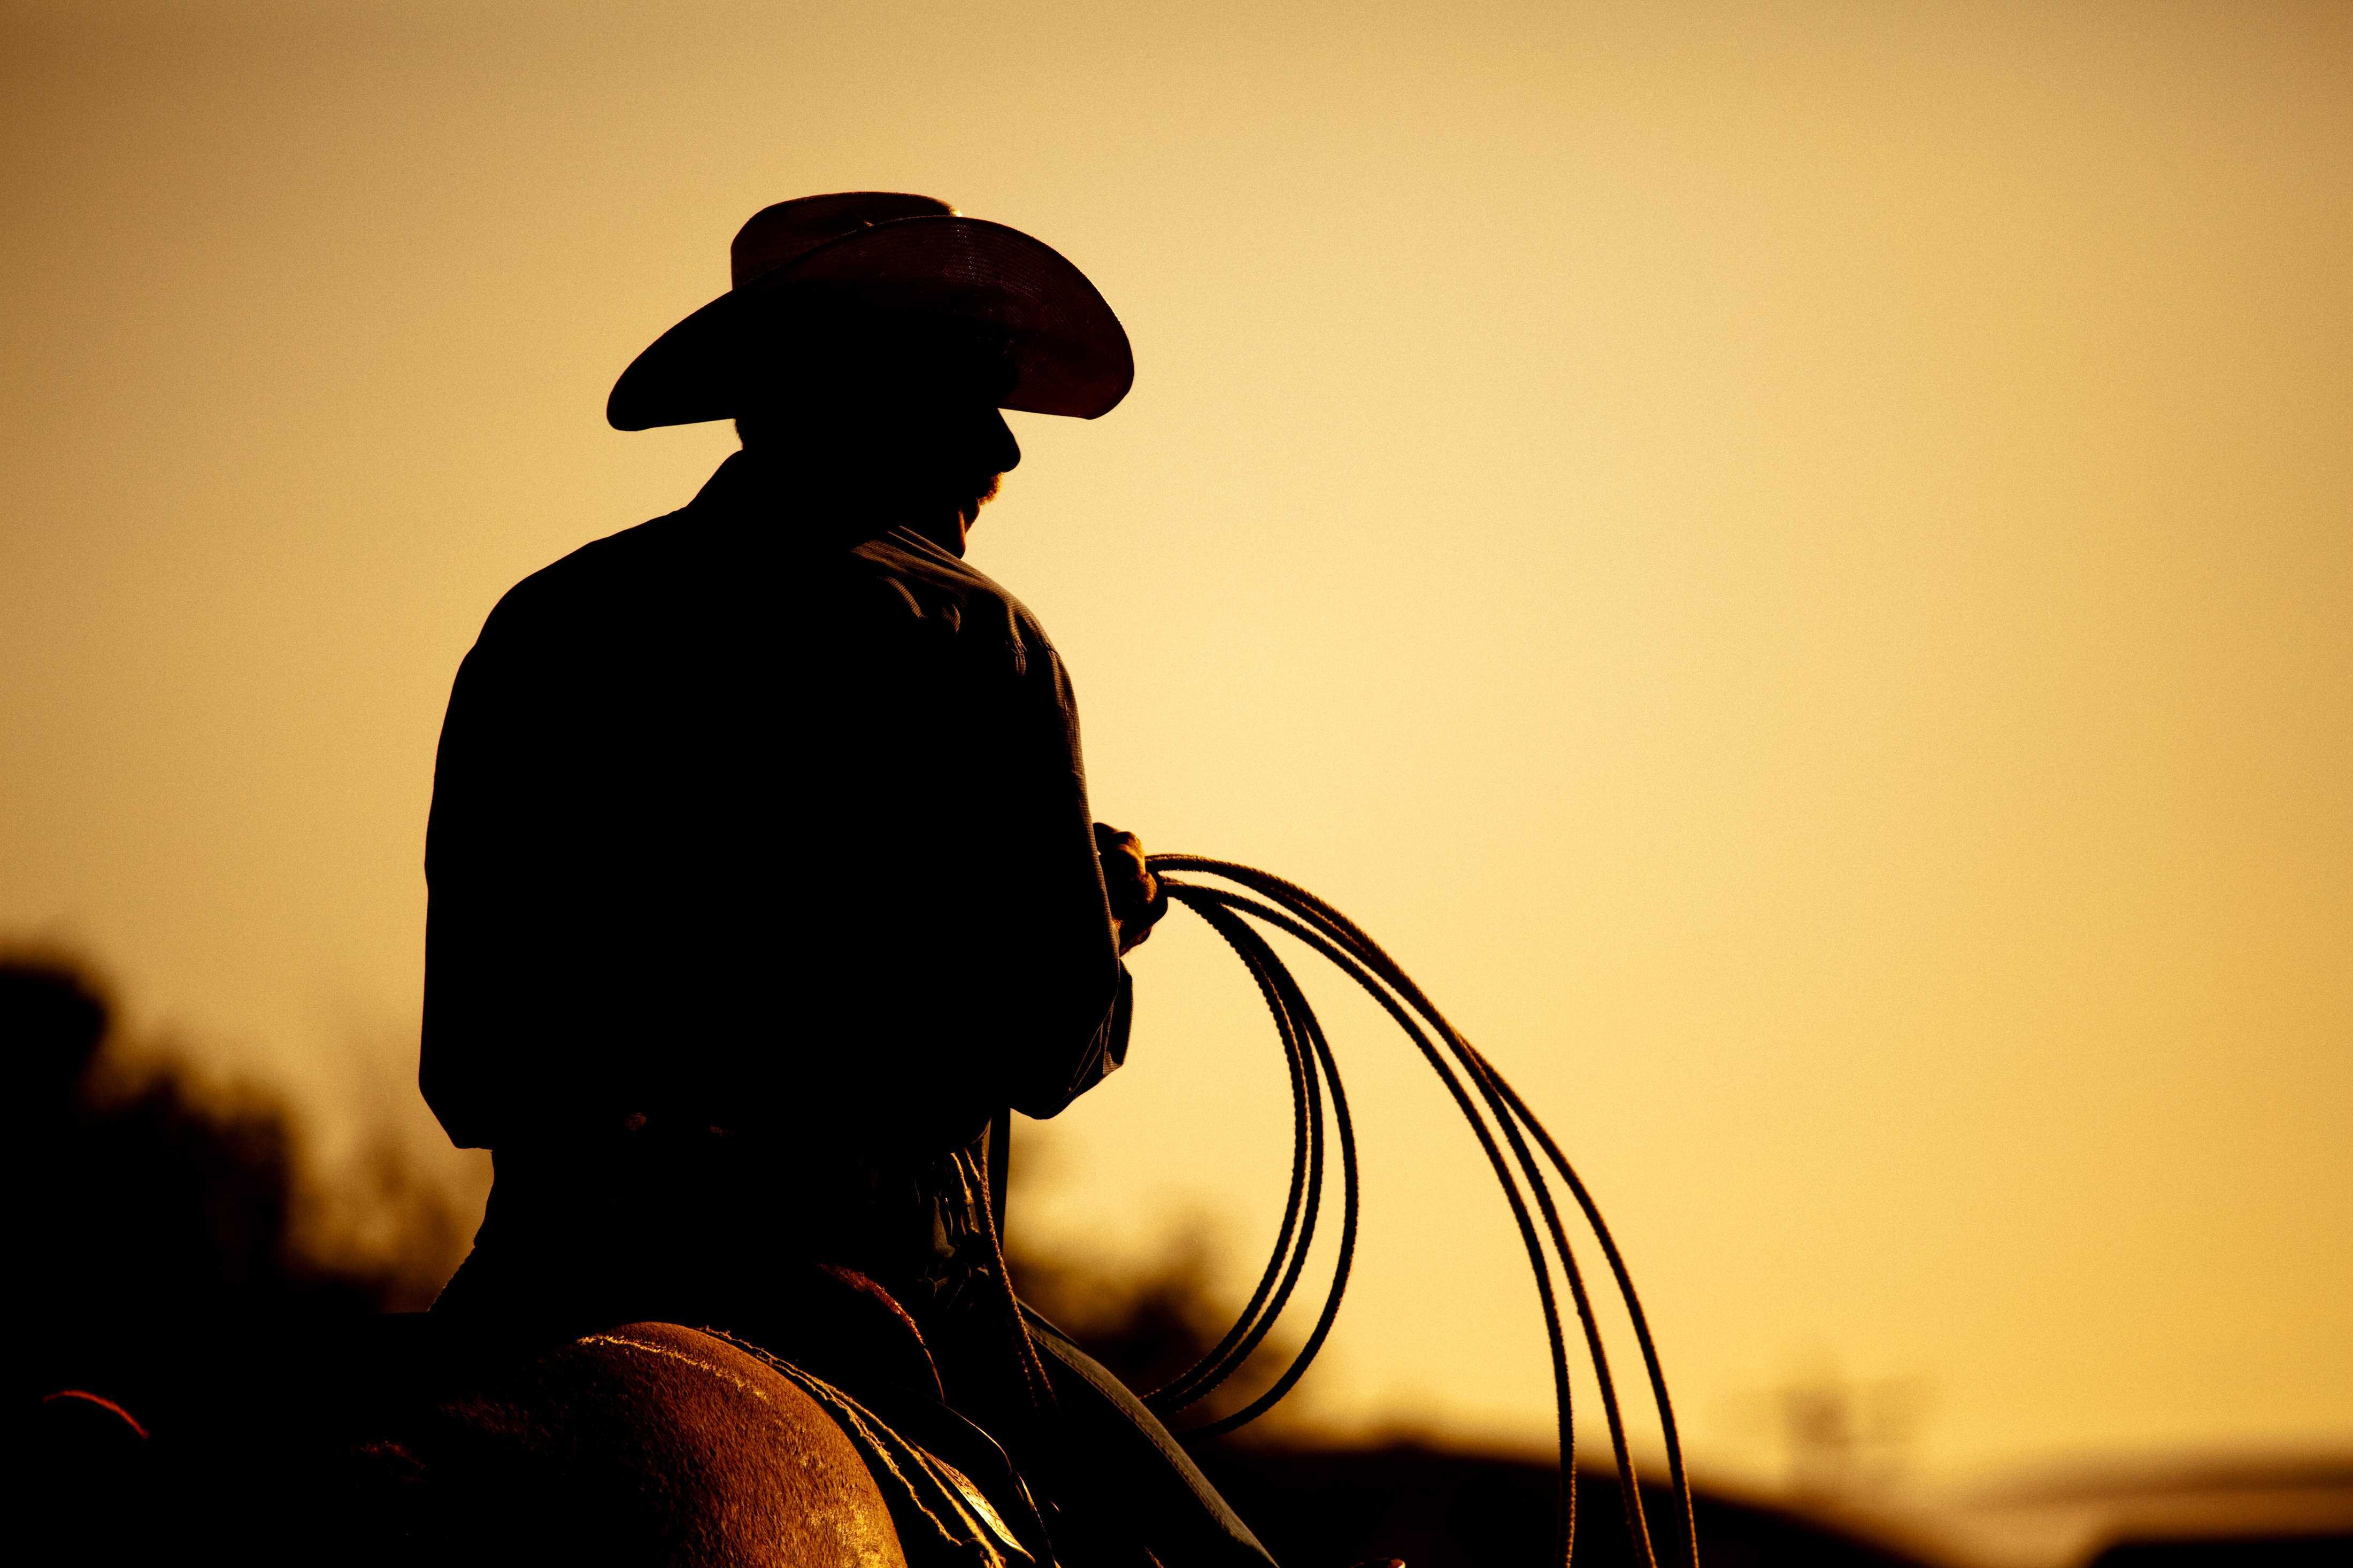 Silhouette of a cowboy riding a horse